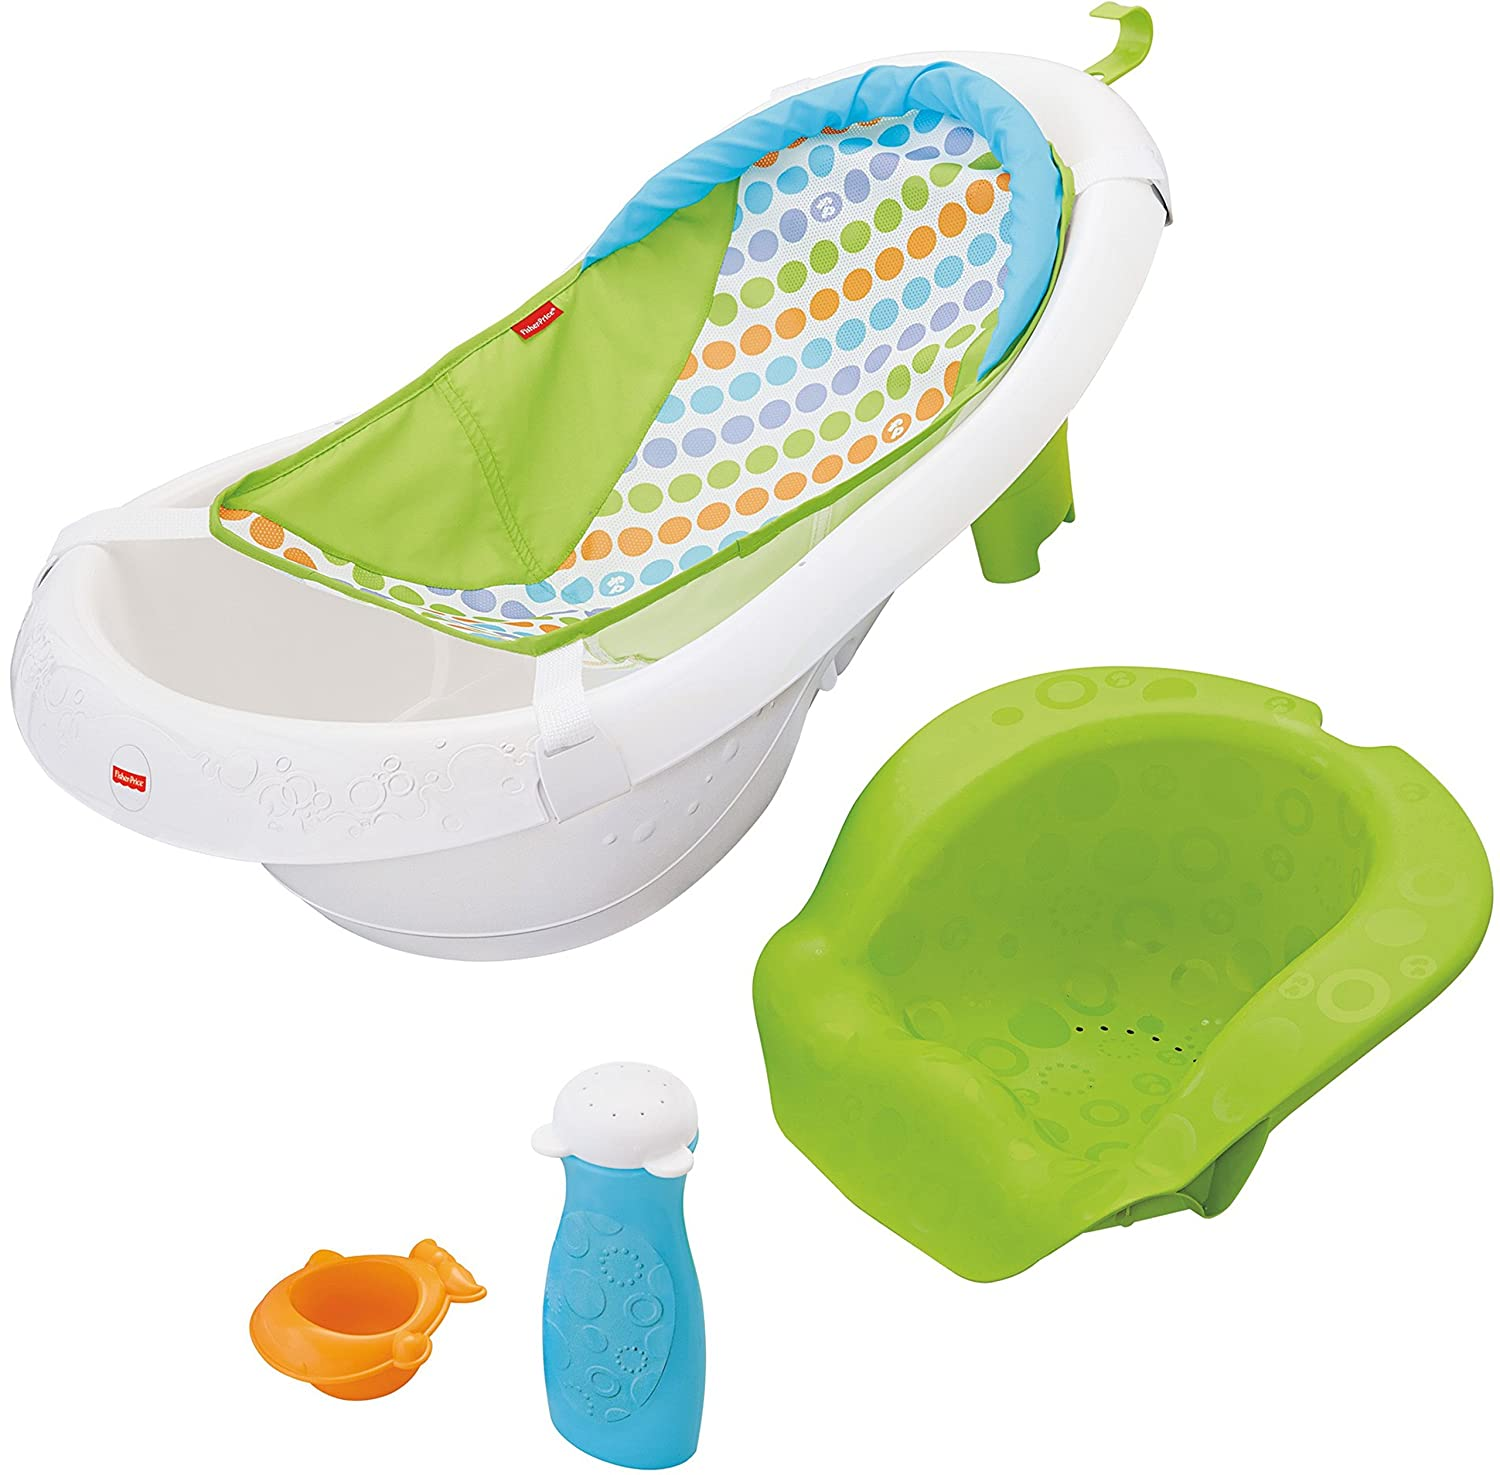 Baby bath chairs for the tub - Amazon Com Fisher Price 4 In 1 Sling N Seat Tub Multi Color Baby Bathing Seats And Tubs Baby